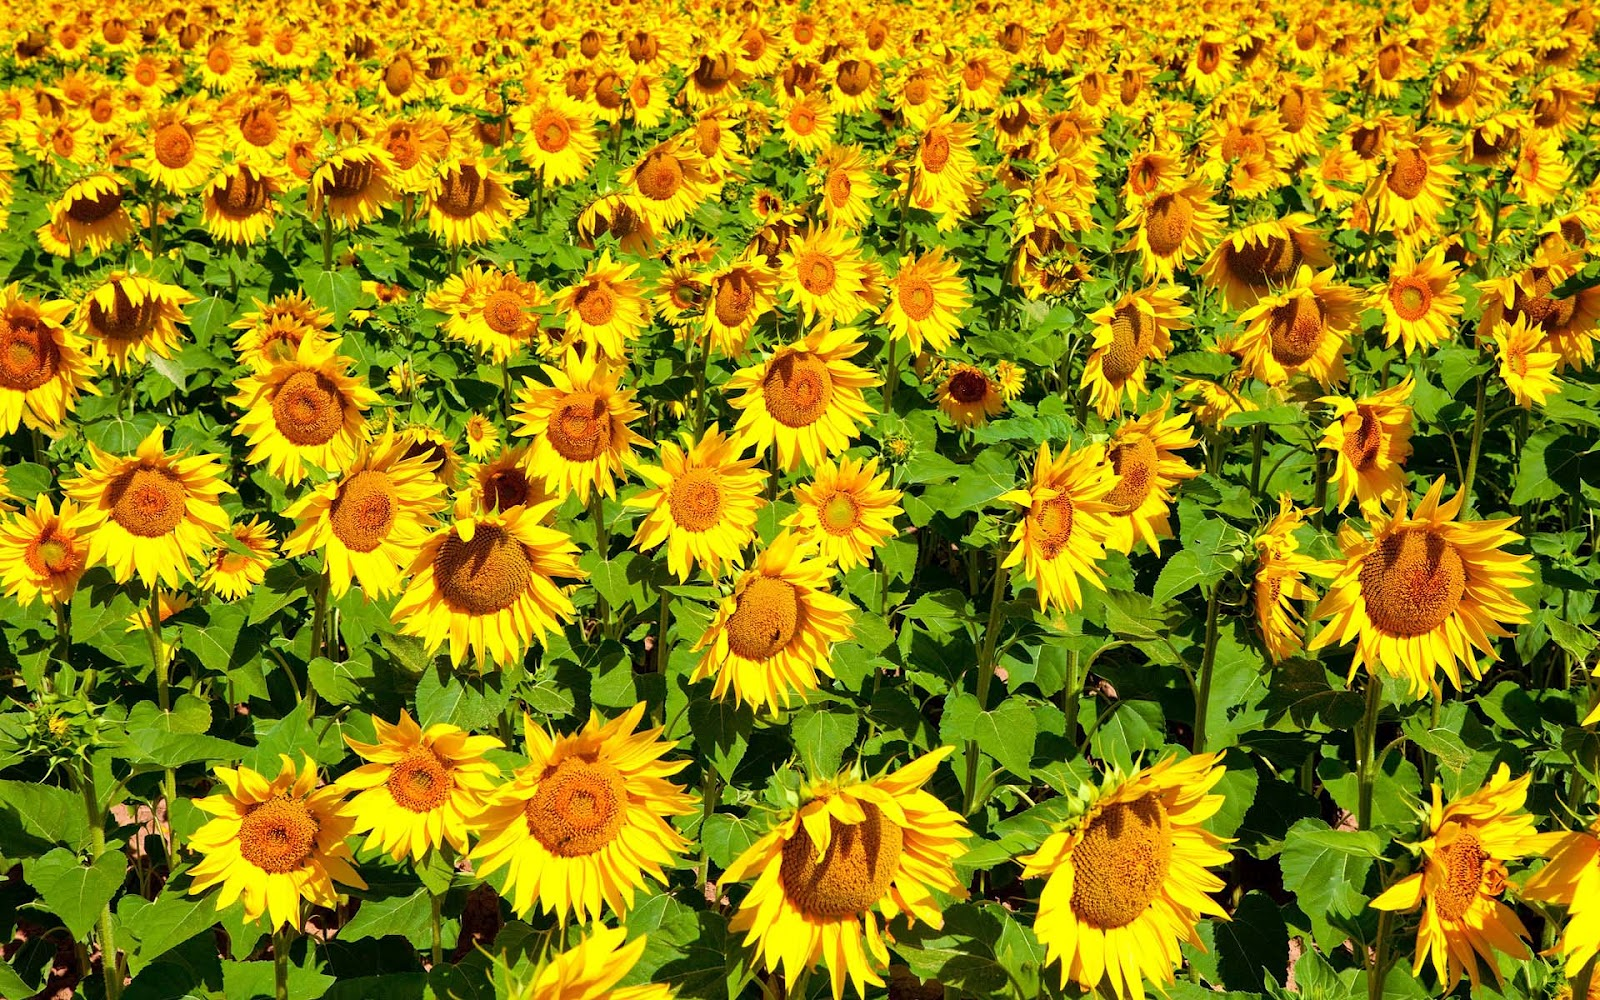 Fall Hd Wallpapers For Mac Hd Sunflowers Wallpapers Top Best Hd Wallpapers For Desktop